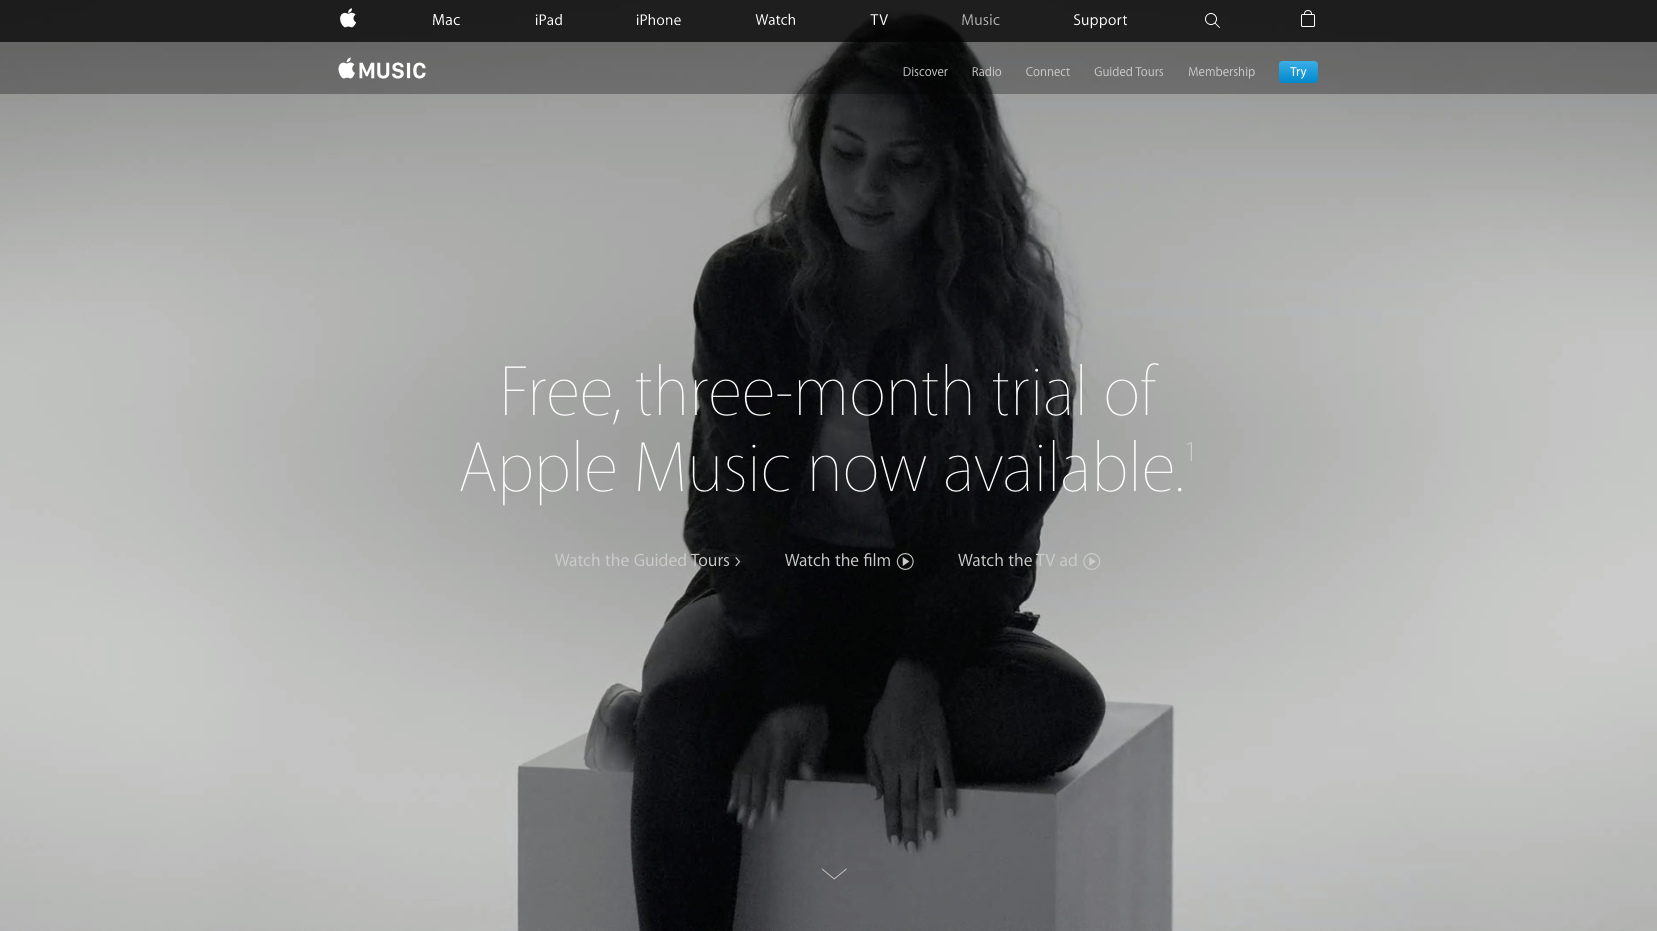 apple music website